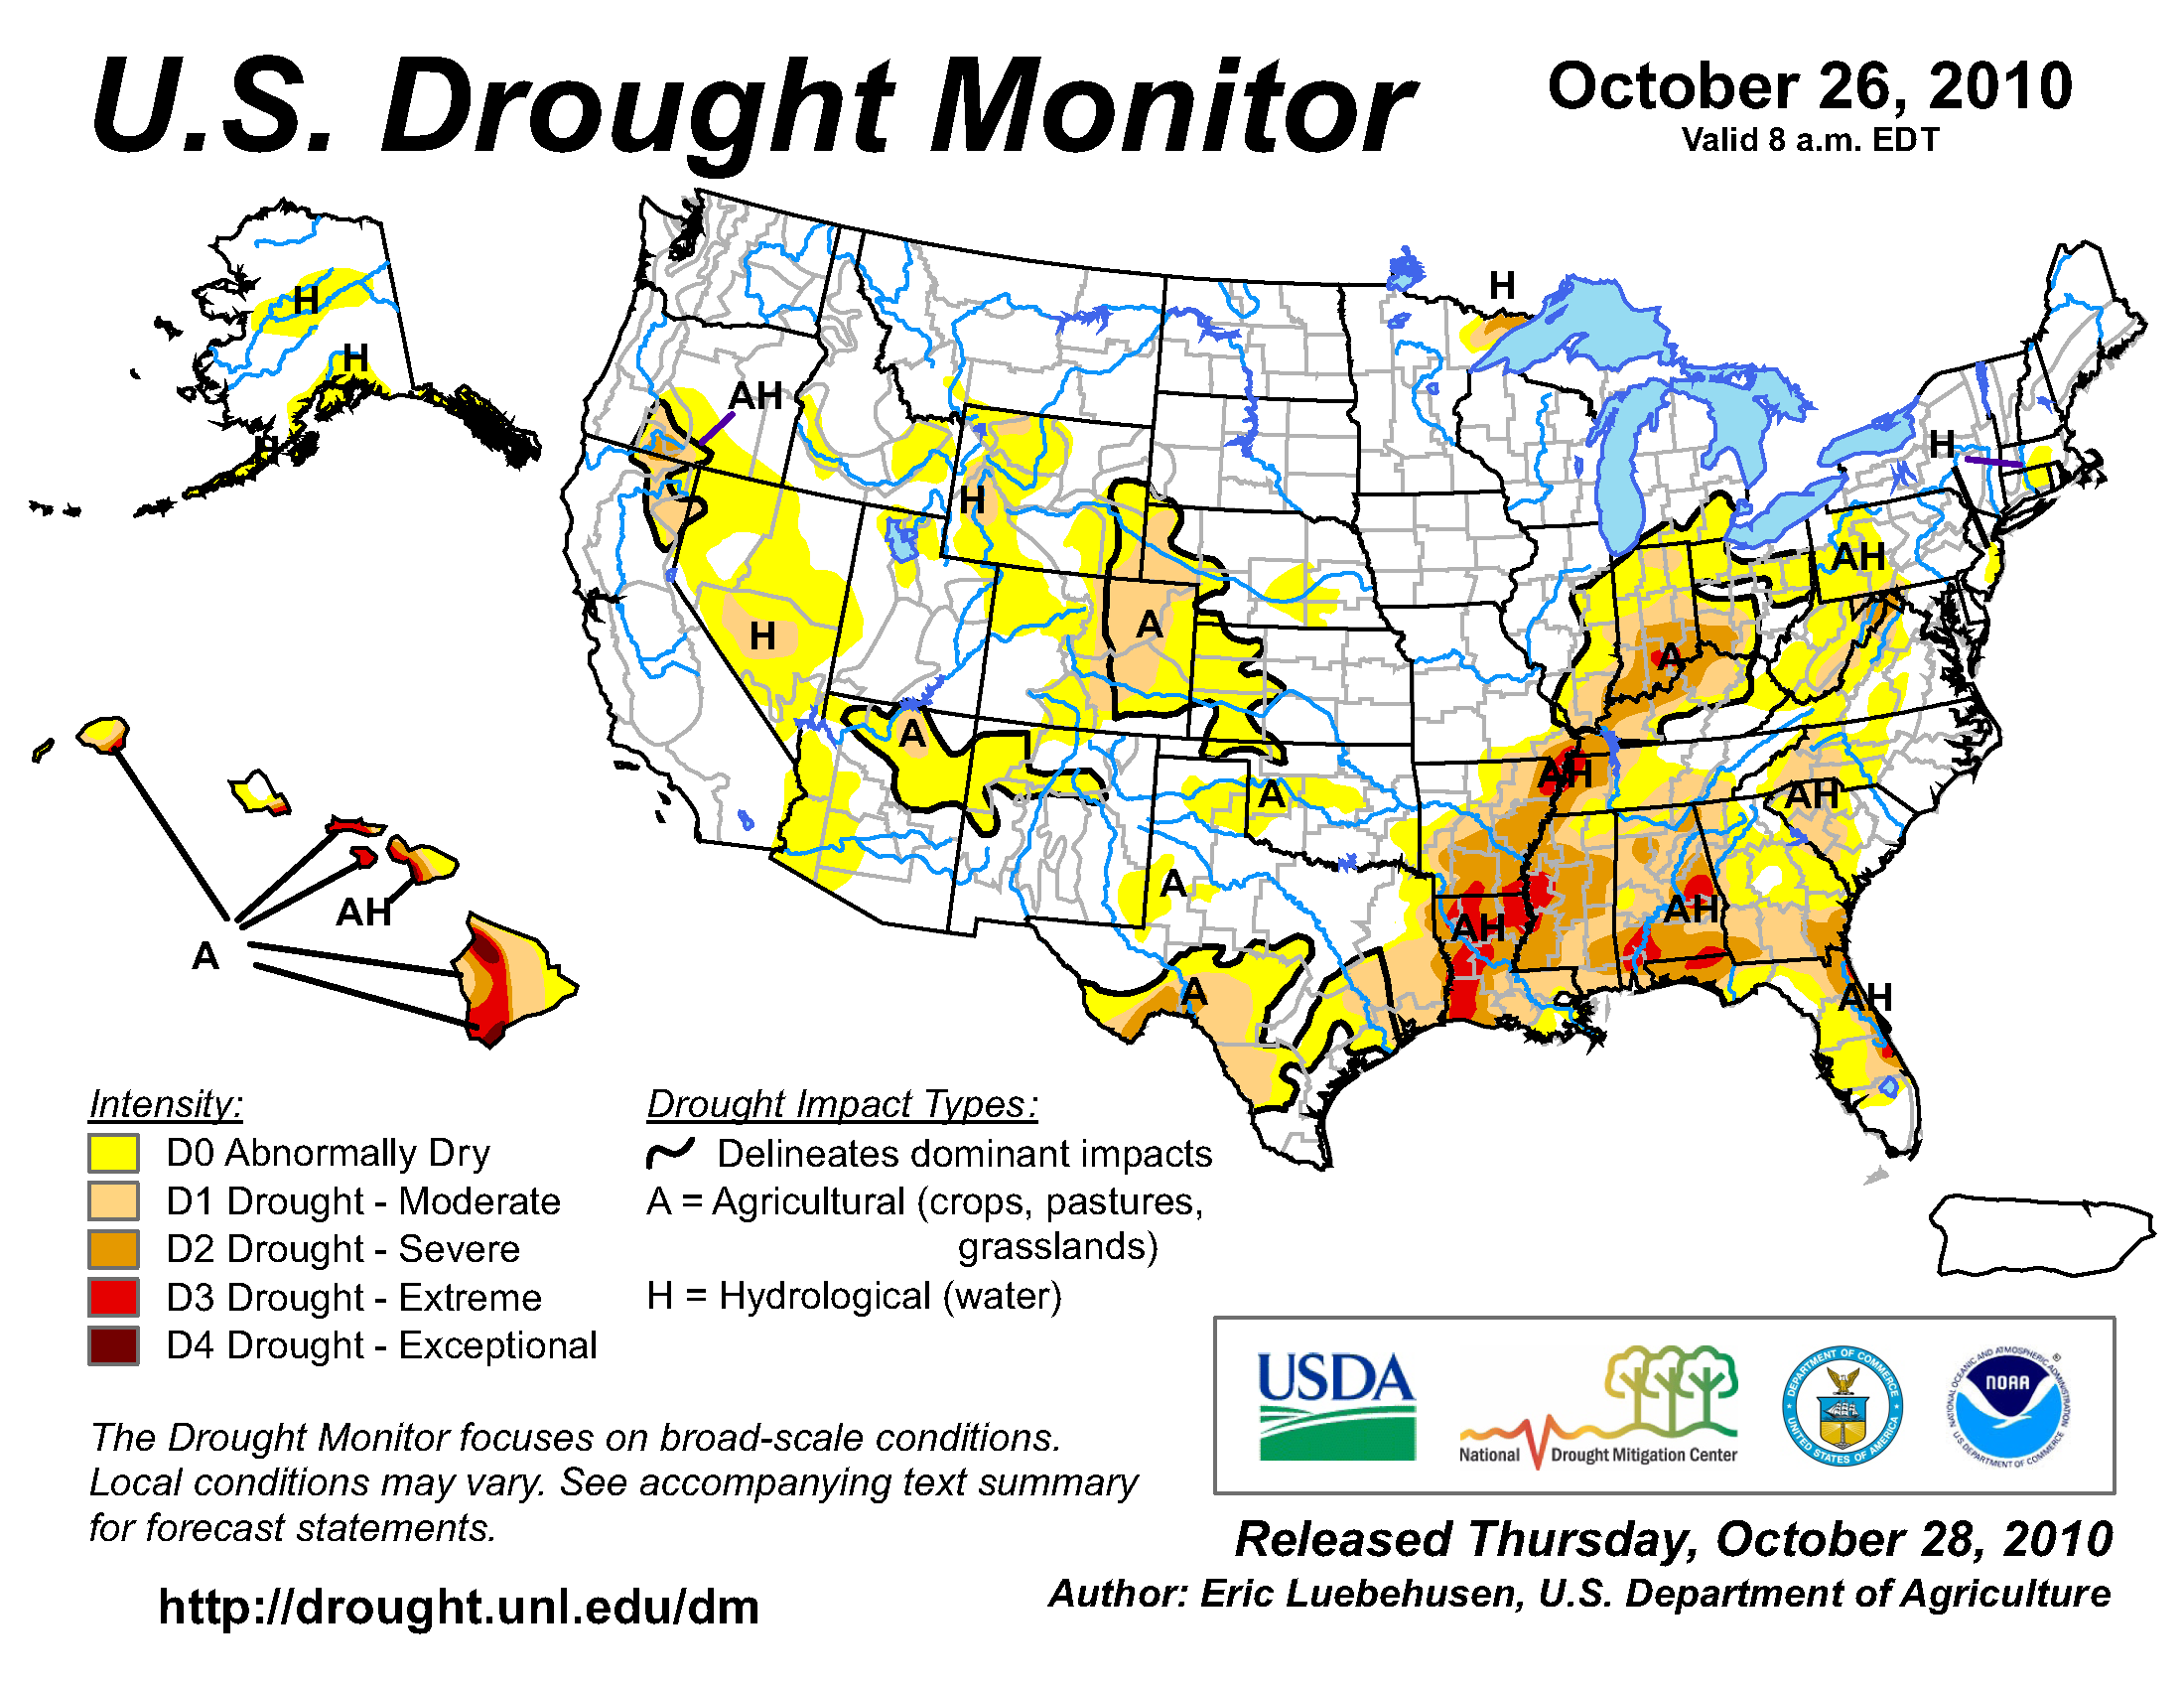 U.S. Drought Monitor map from 26 October 2010